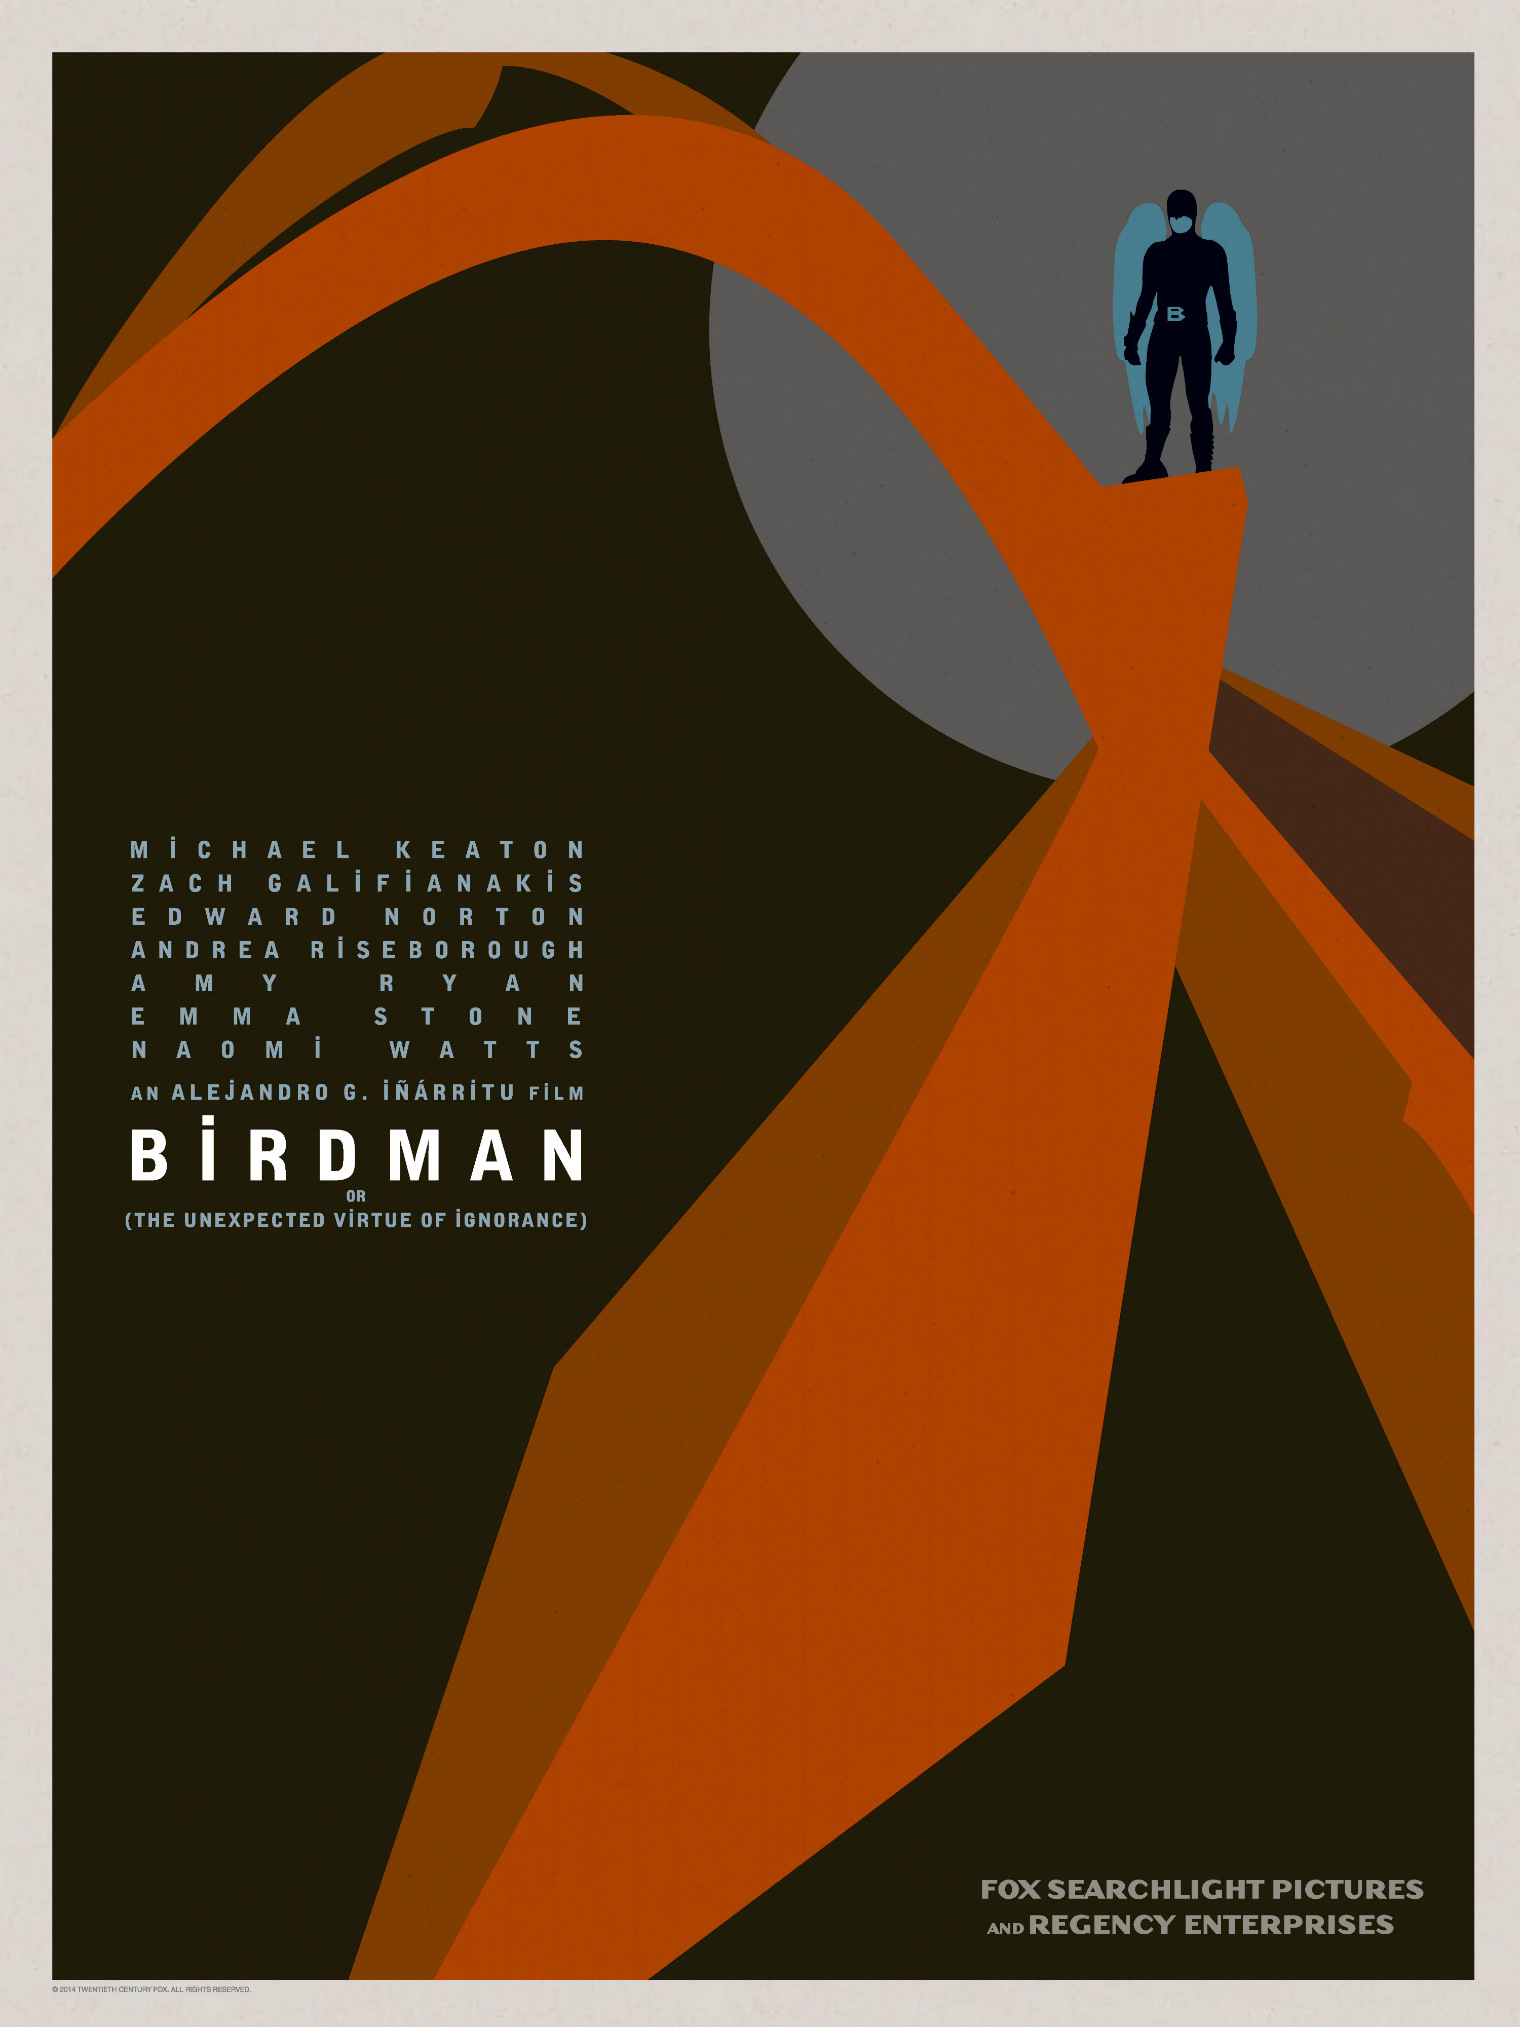 Birdman-Official Poster Minimalist XLG-13OUTUBRO2014-02